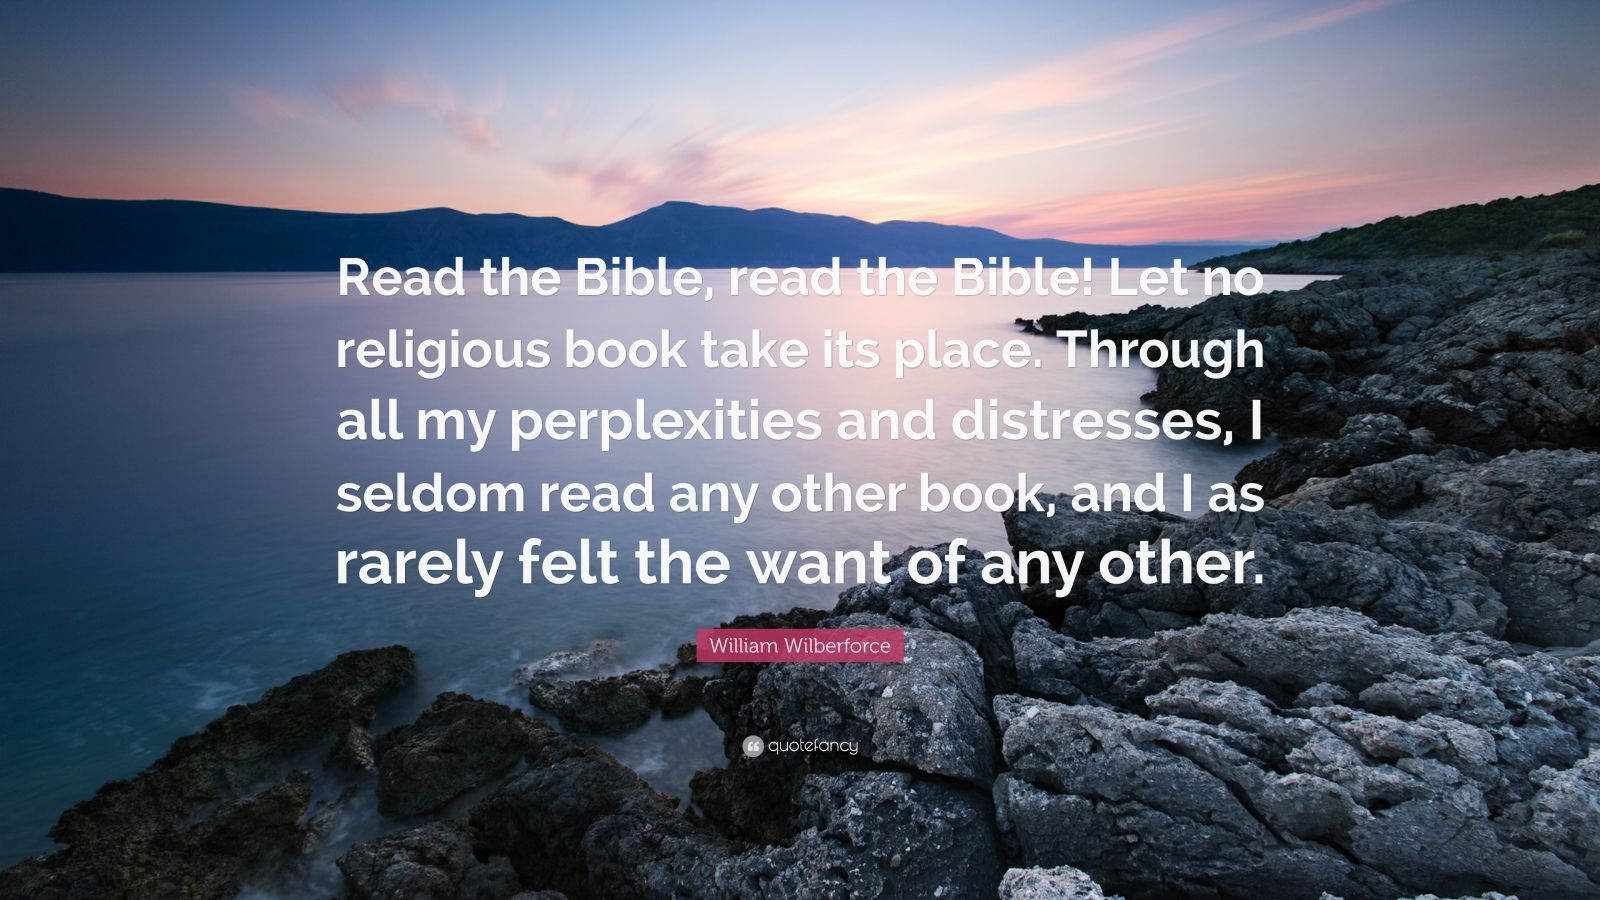 """William Wilberforce Quote: """"Read the Bible, read the Bible! Let no religious book take its place. Through all my perplexities and distresses, I seldom read any other book, and I as rarely felt the want of any other."""""""